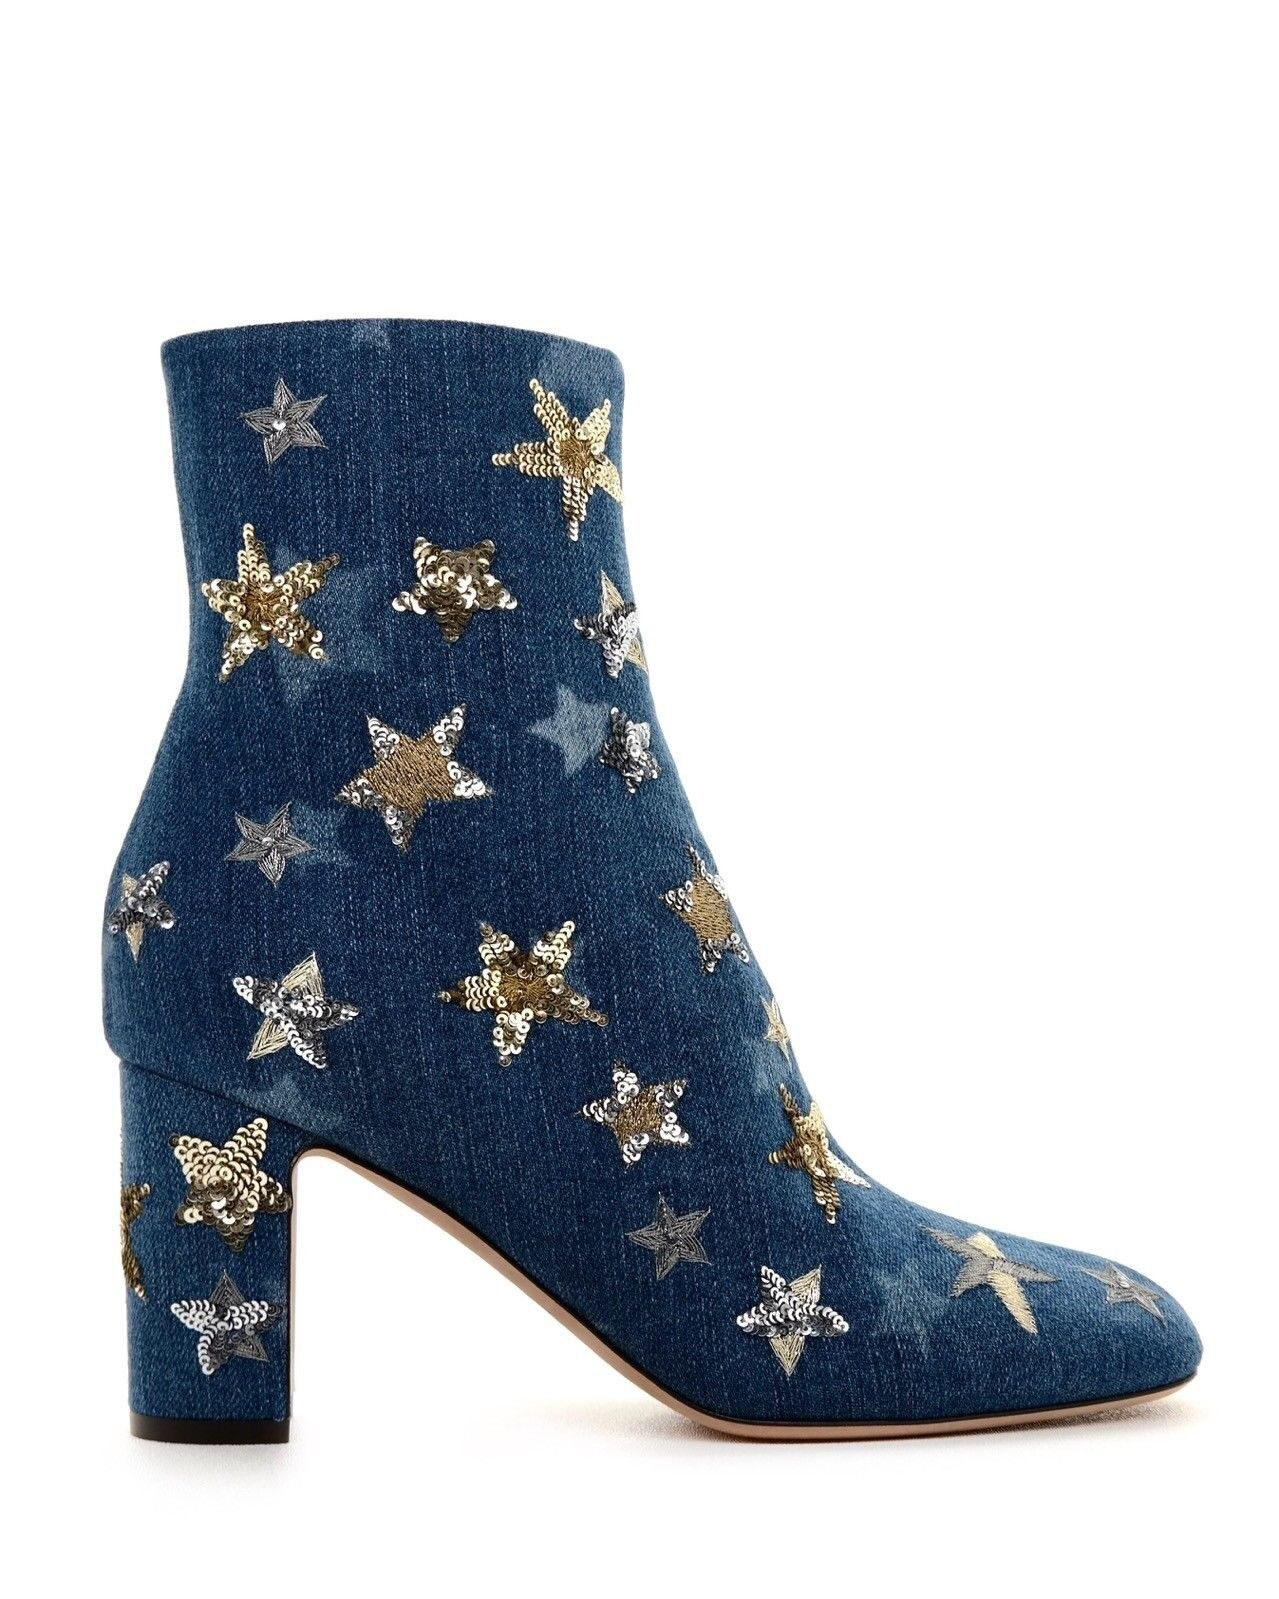 Valentino Boots Sequined Star Embellished Blue Denim Size 8 NIB